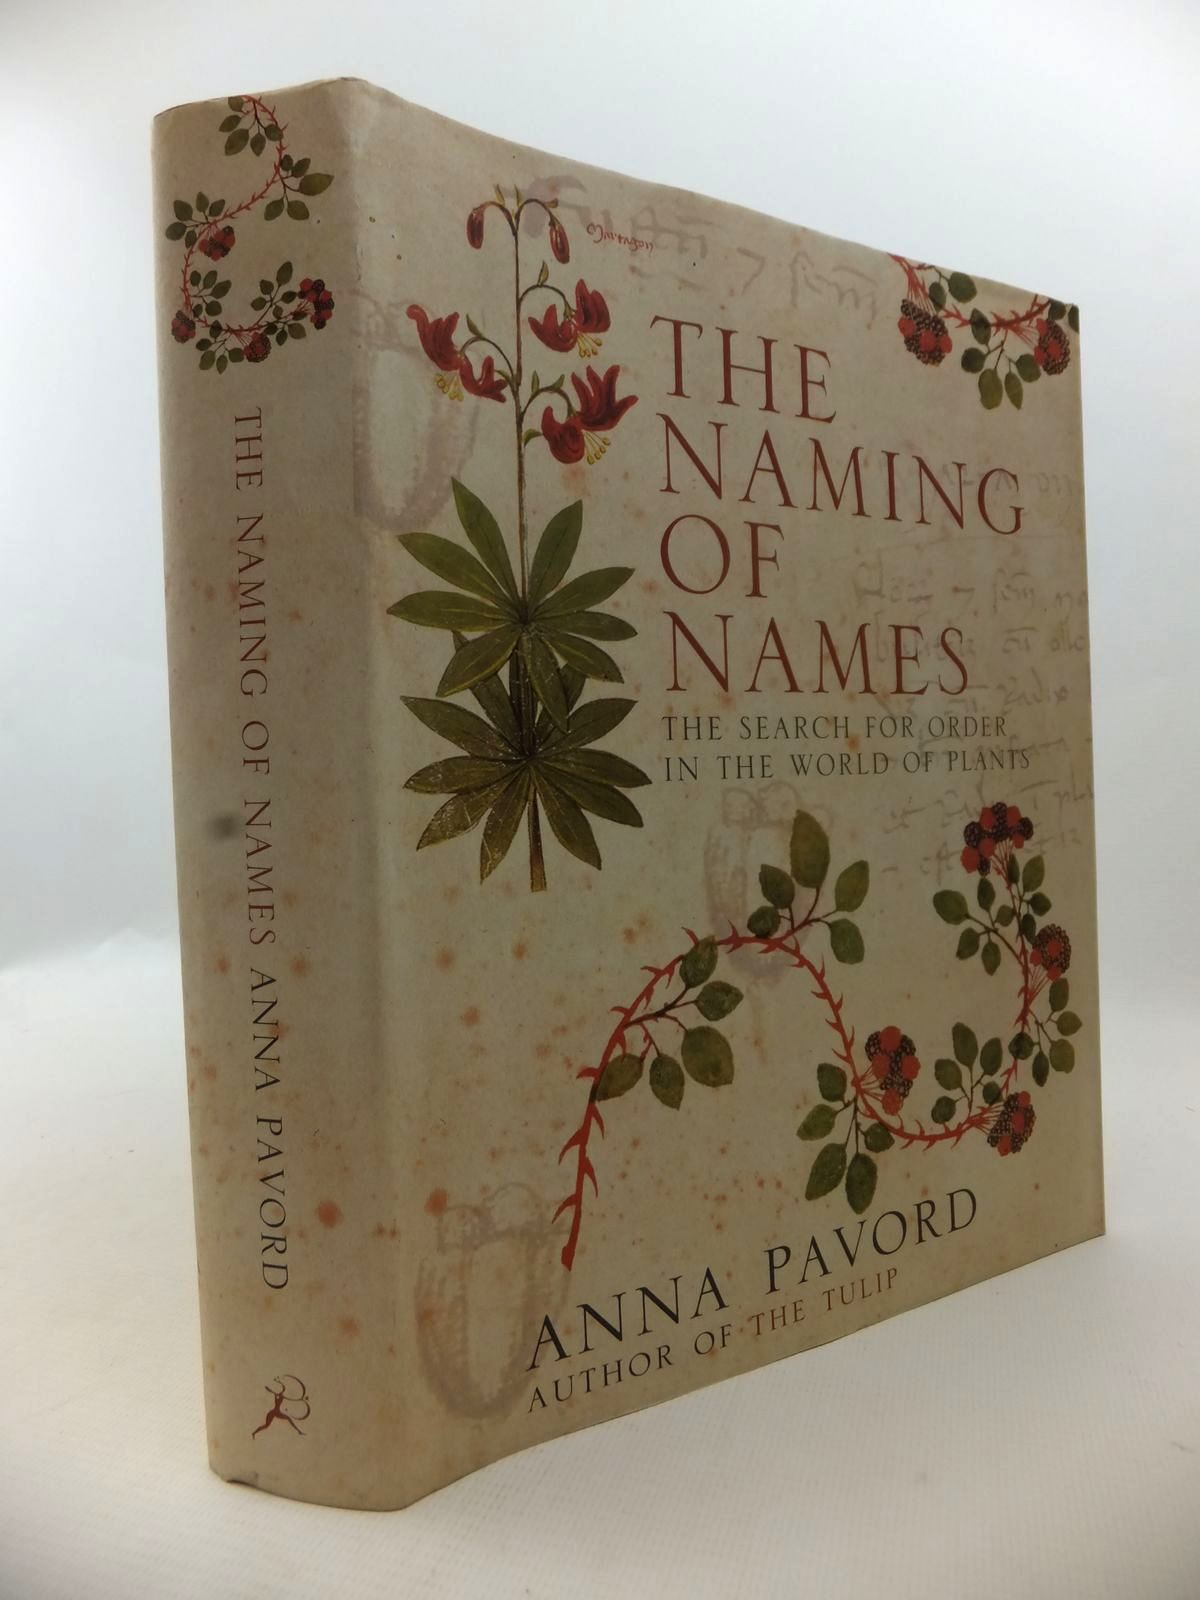 Photo of THE NAMING OF NAMES: THE SEARCH FOR ORDER IN THE WORLD OF PLANTS written by Pavord, Anna published by The Bloomsbury Publishing Co. Ltd. (STOCK CODE: 1813223)  for sale by Stella & Rose's Books